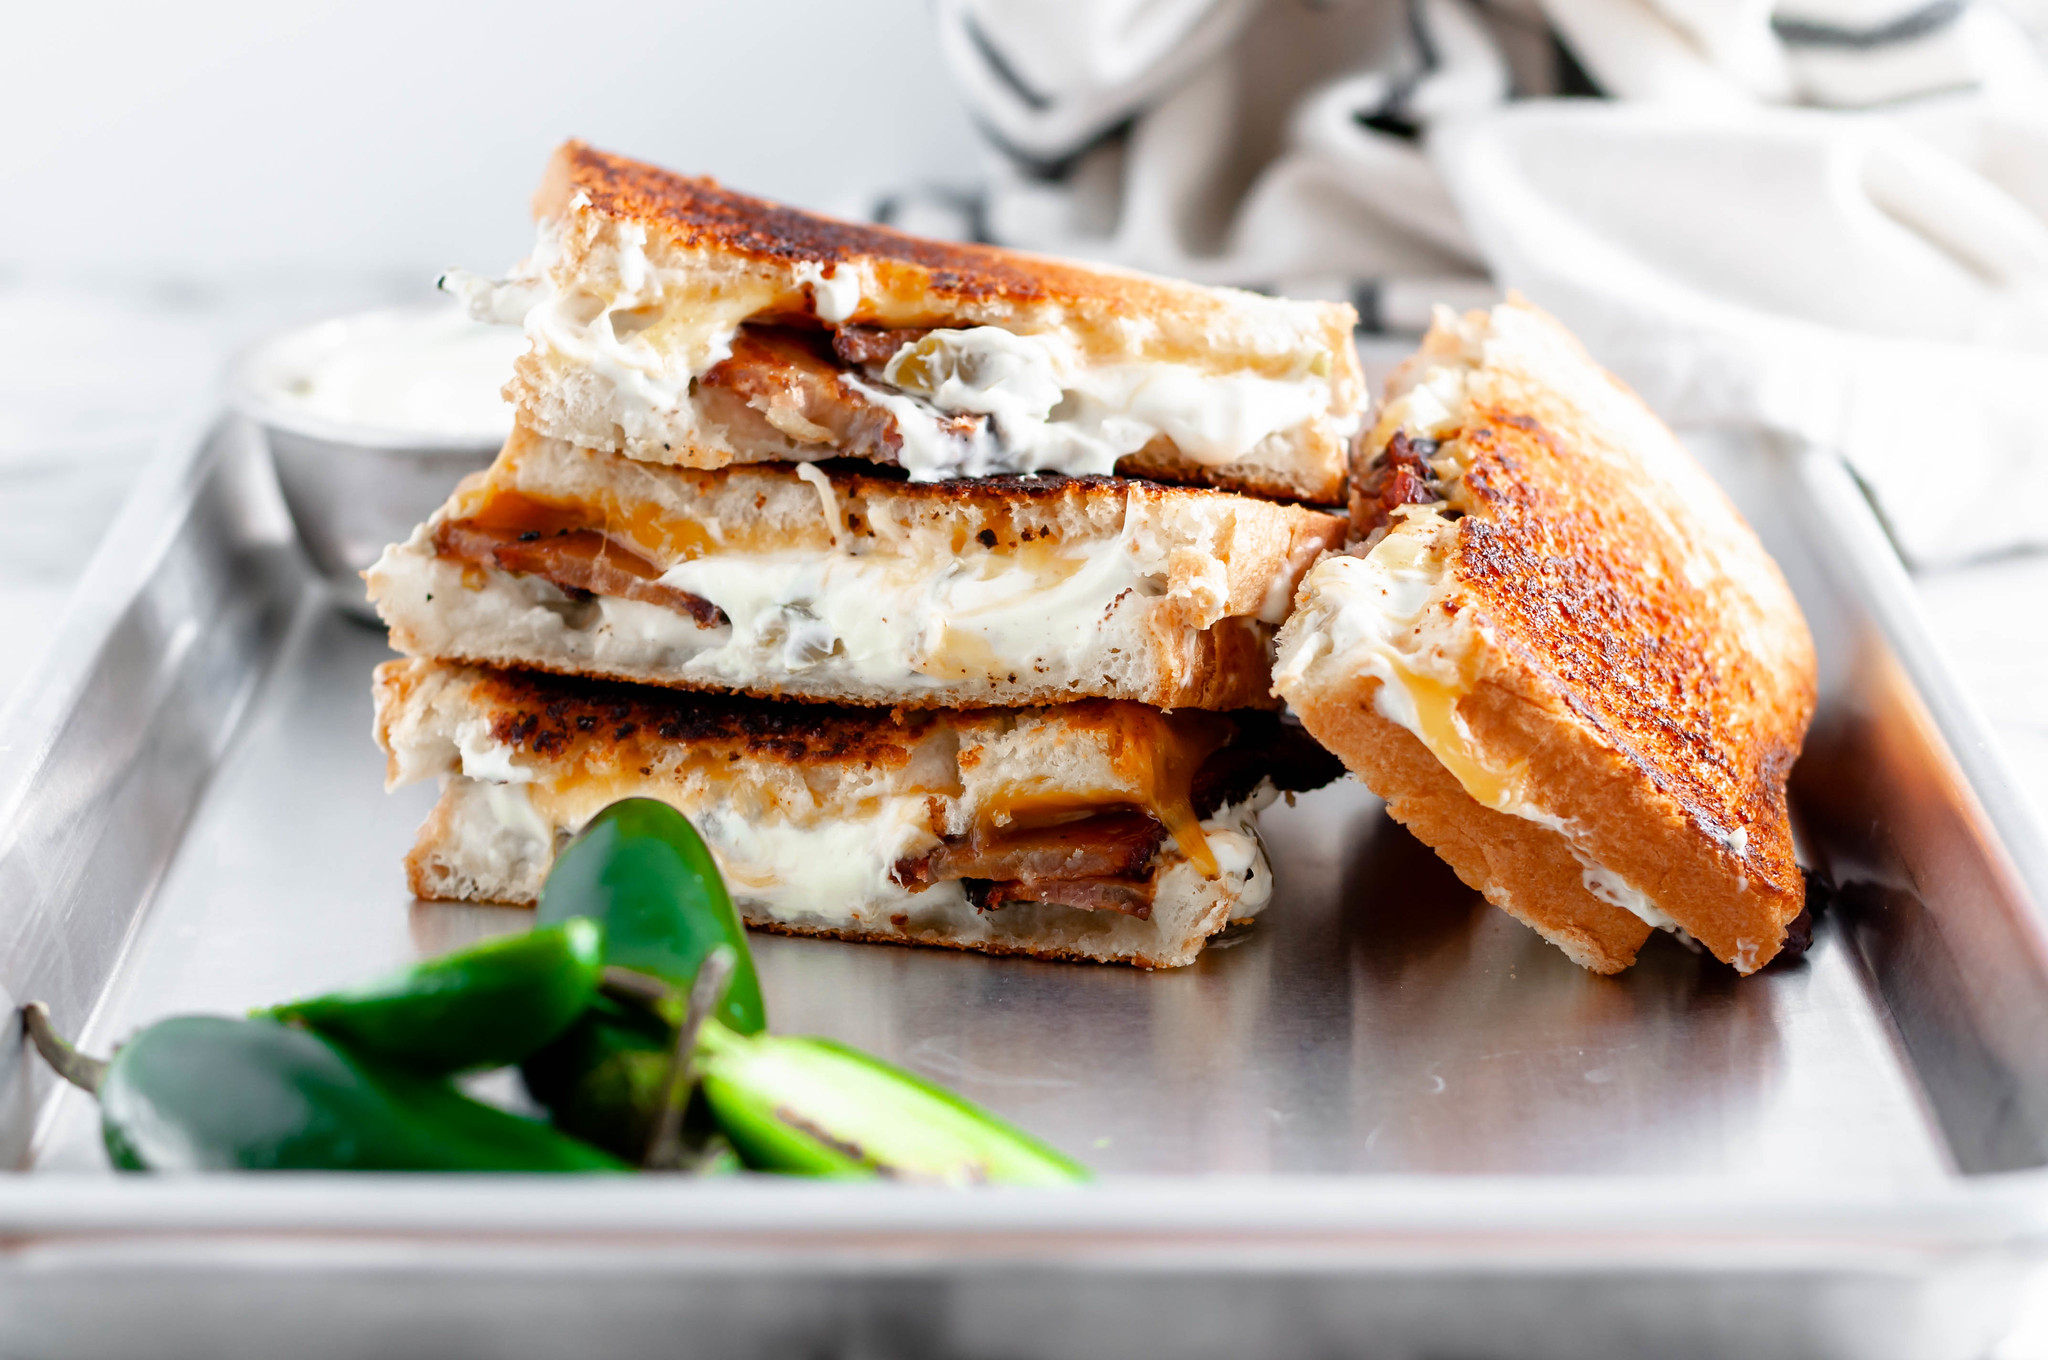 Meet your new favorite sandwich, the Jalapeno Grilled Cheese. Jalapeno jelly, cream cheese, pickled jalapenos, sharp cheddar and bacon combine to make the most glorious sandwich around.